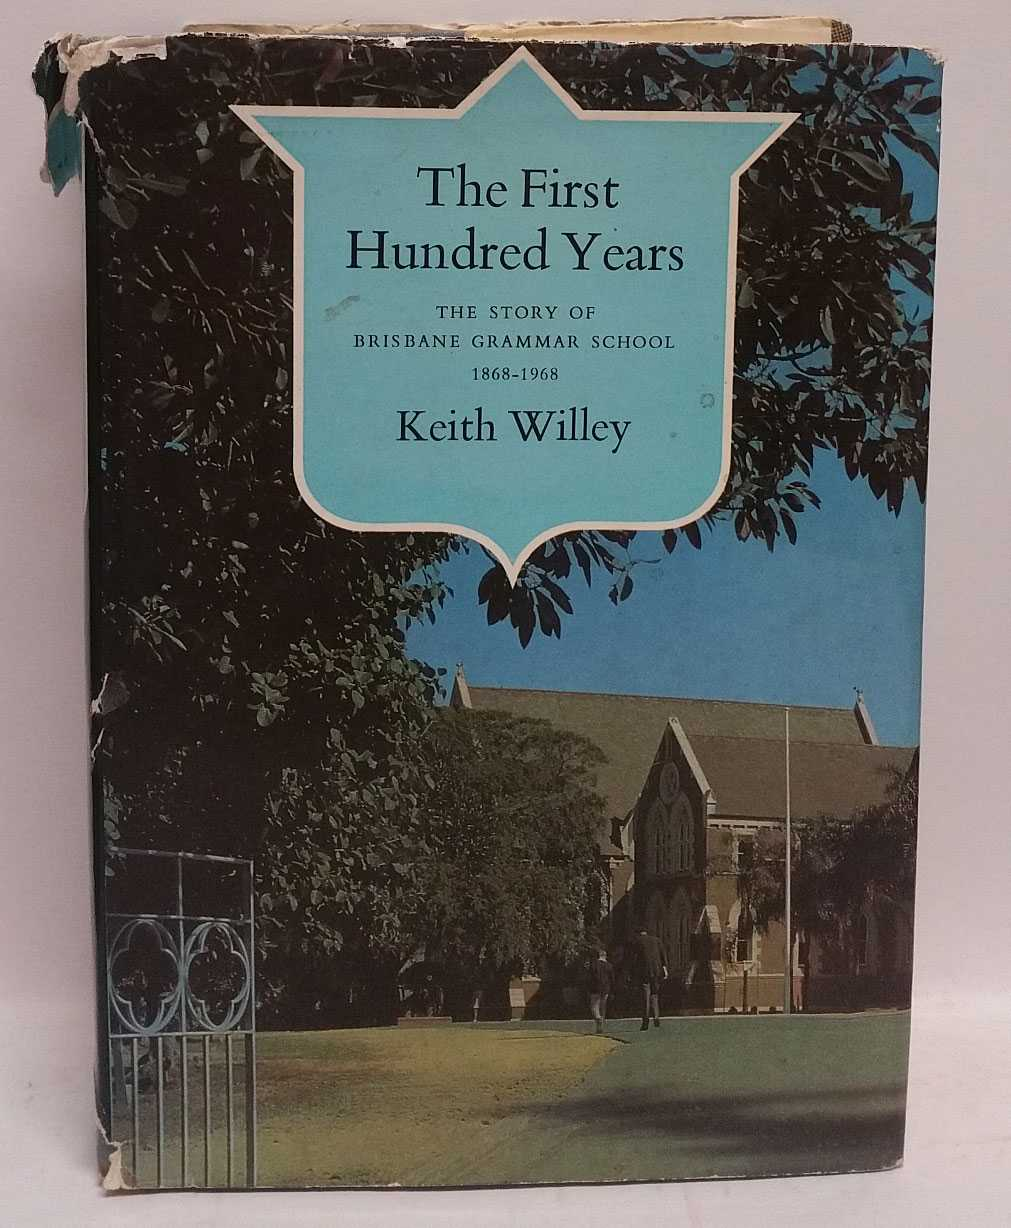 KEITH WILLEY - The First Hundred Years: The Story of Brisbane Grammar School, 1868-1968